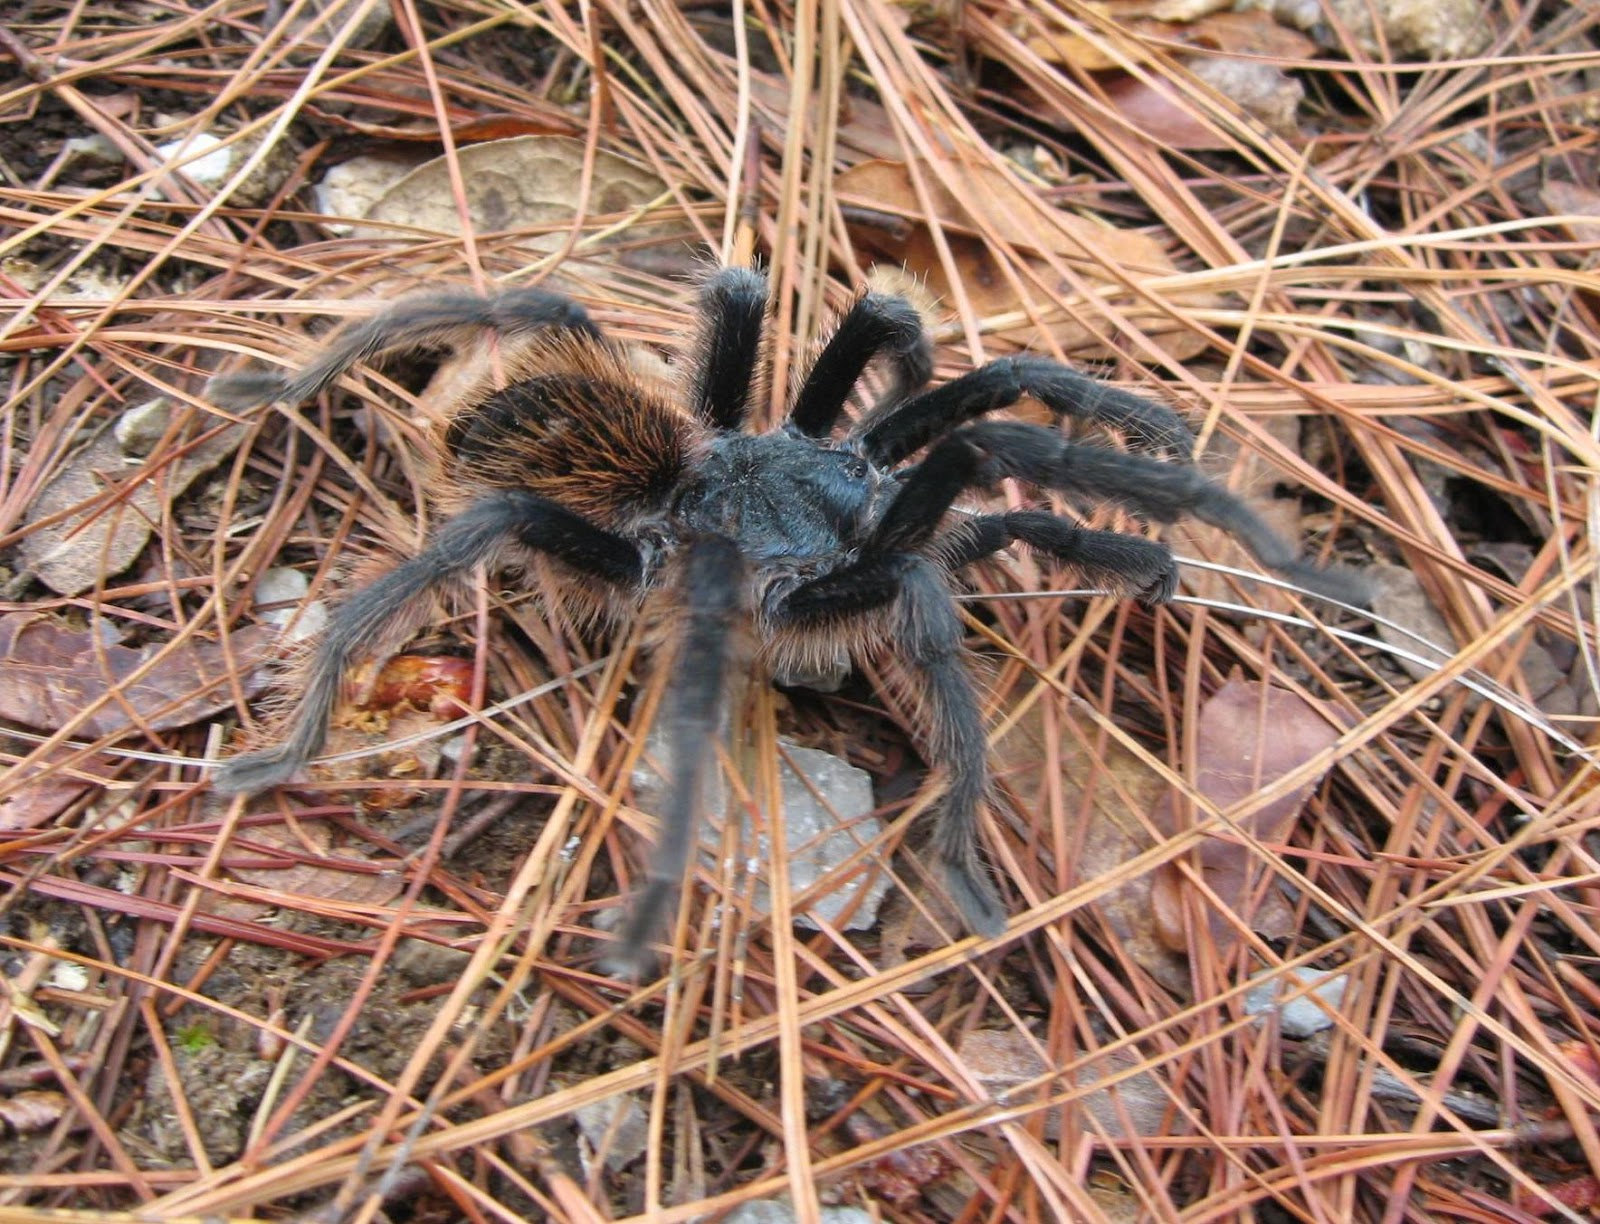 10 Facts About Tarantula Spider - Facts Did You Know?